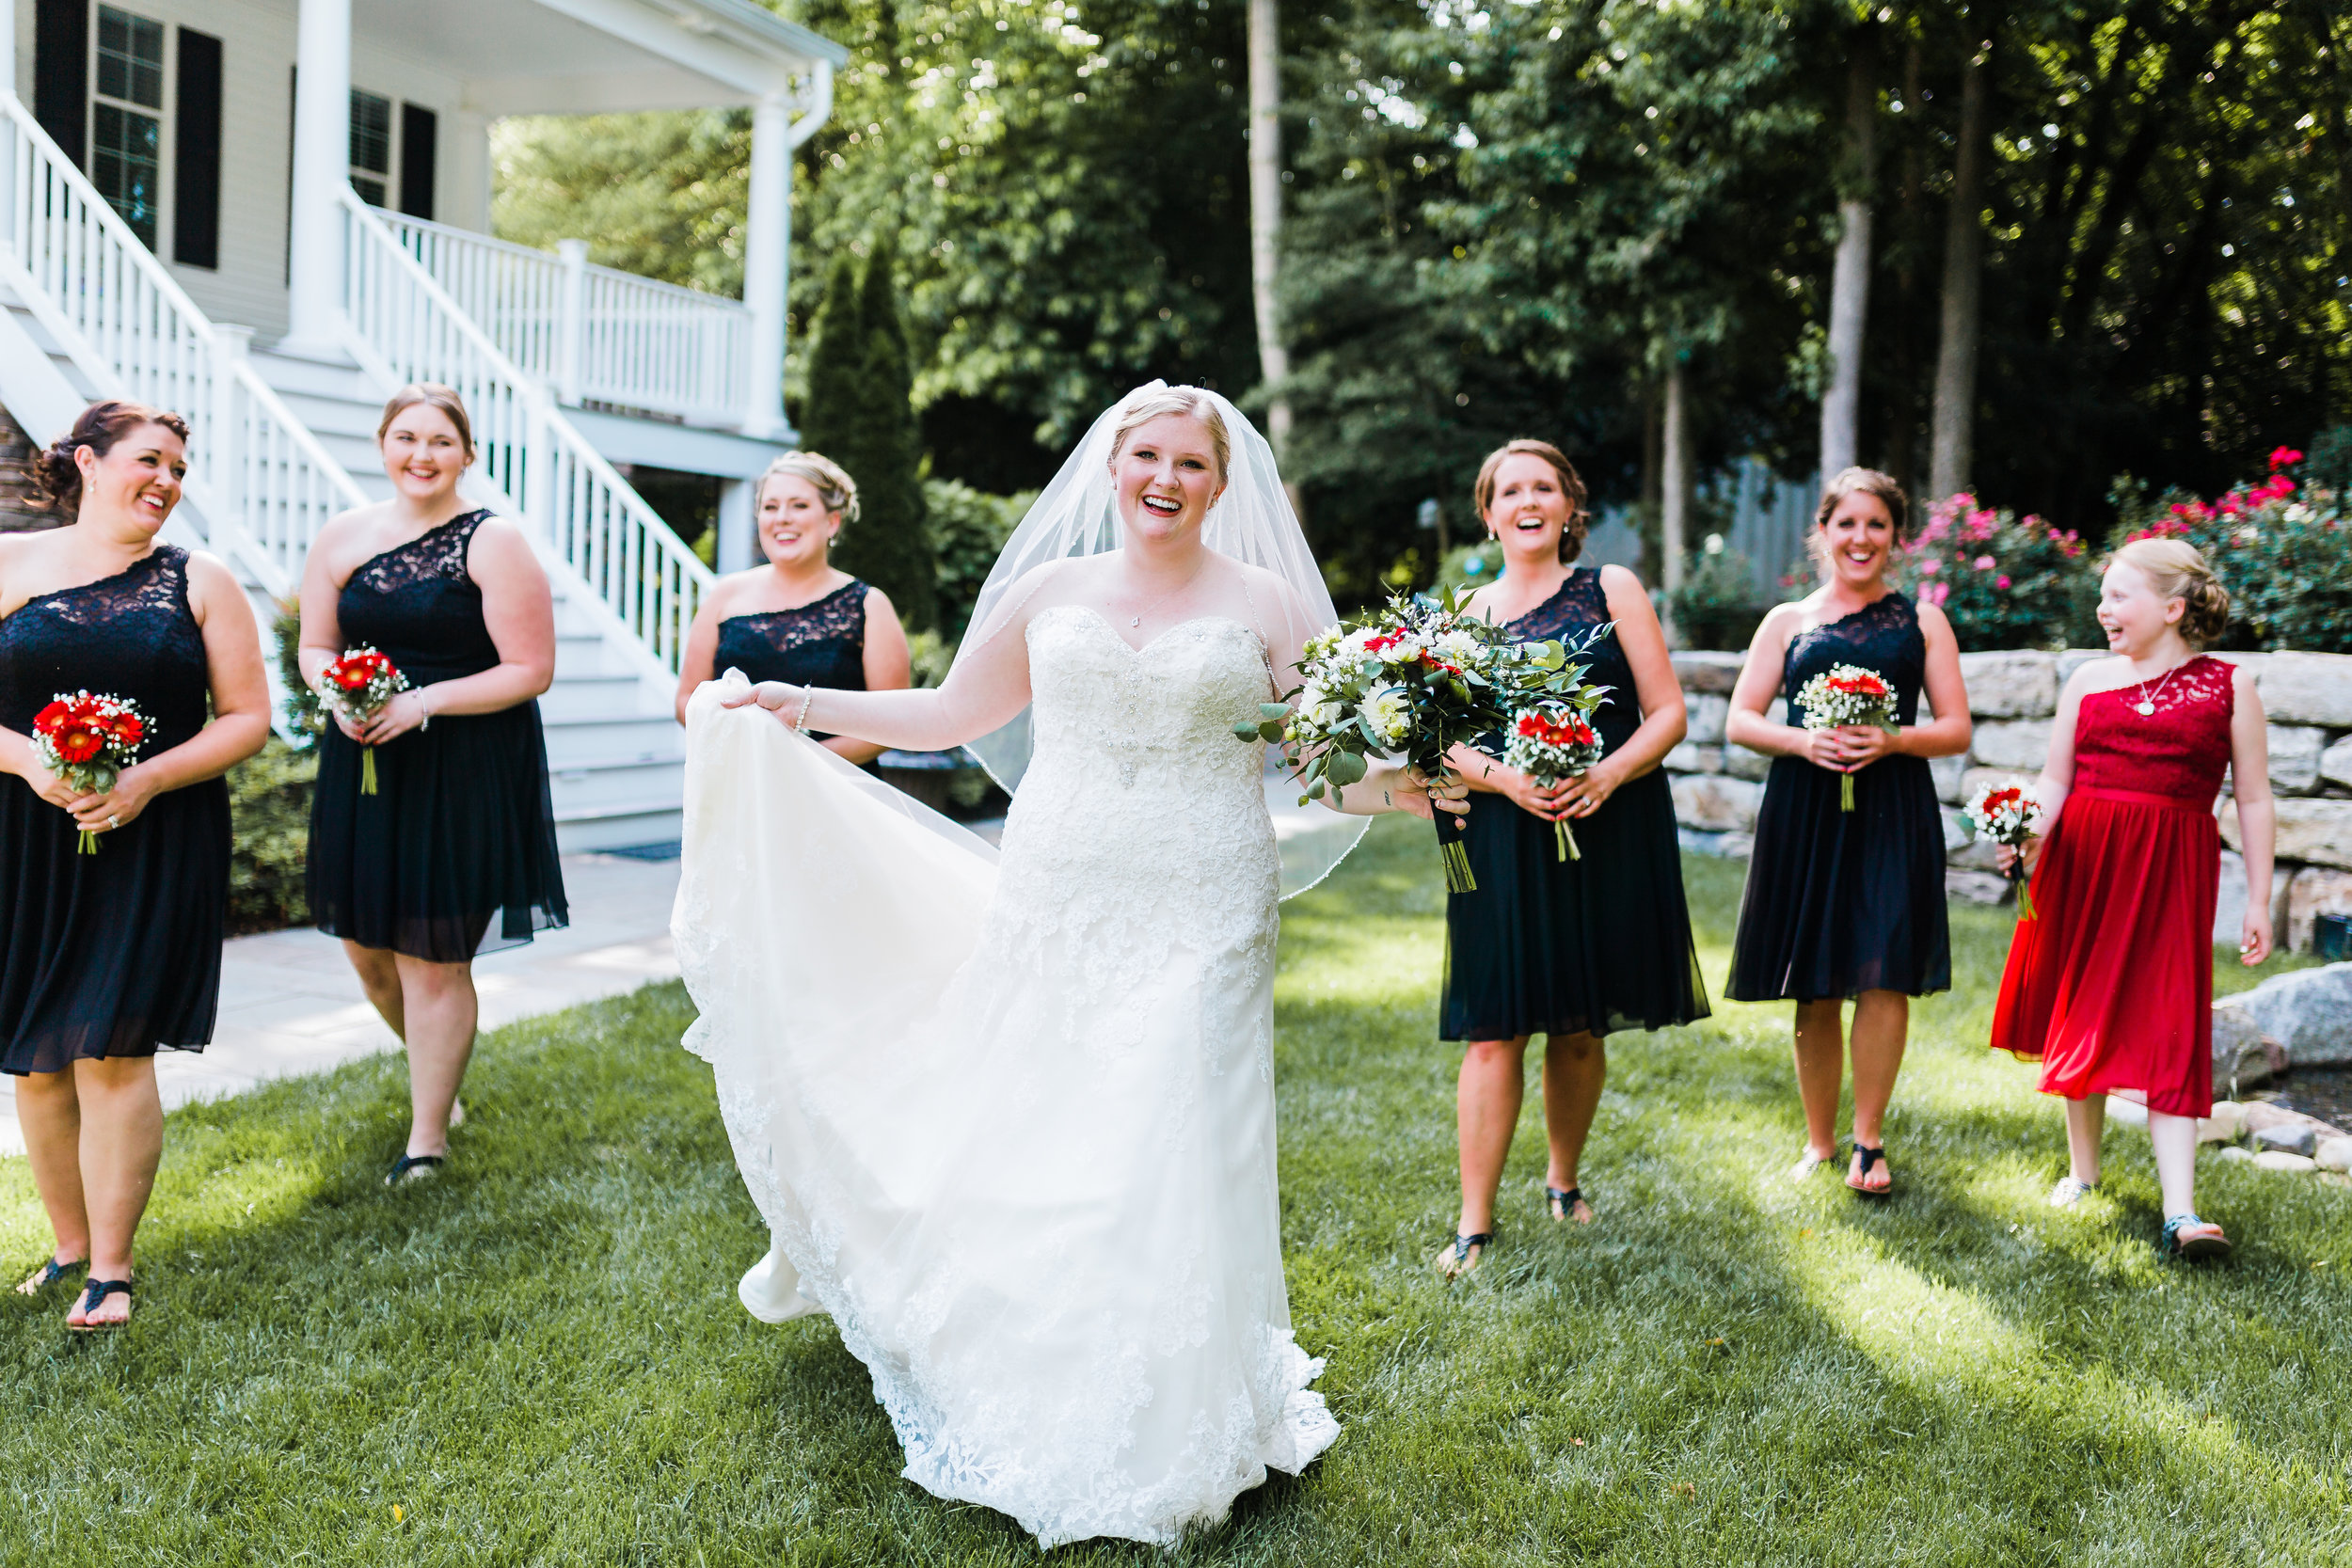 bride and bridesmaids photos - black bridesmaid dresses - red wedding bouquets and flowers - best maryland wedding photographer